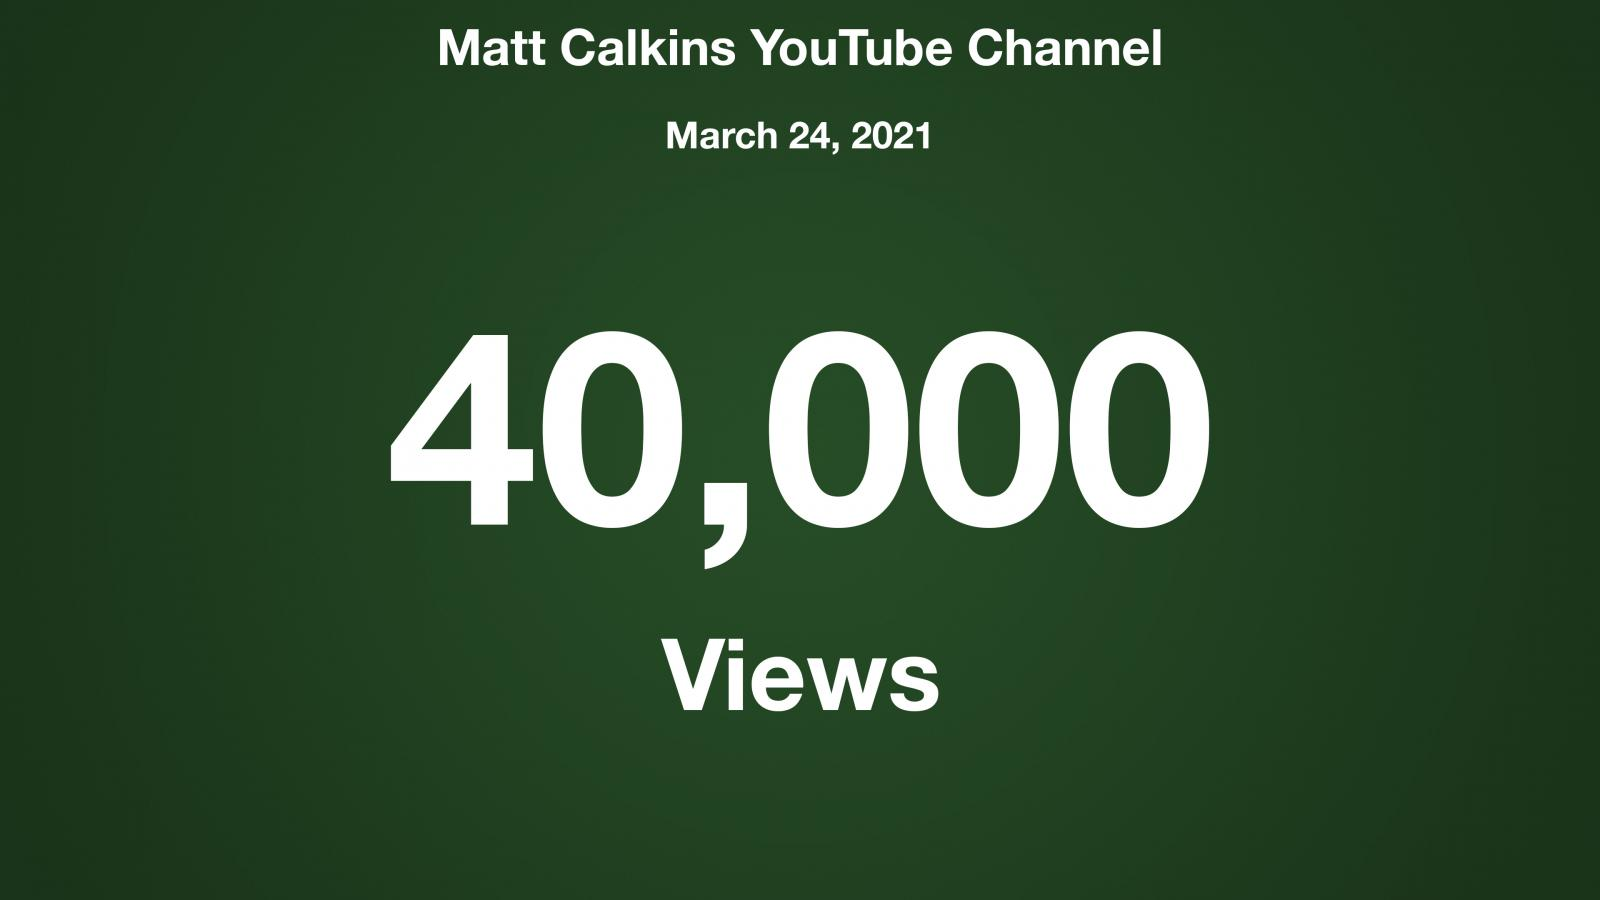 Matt Calkins YouTube Channel, March 24 2021, 40000 Views